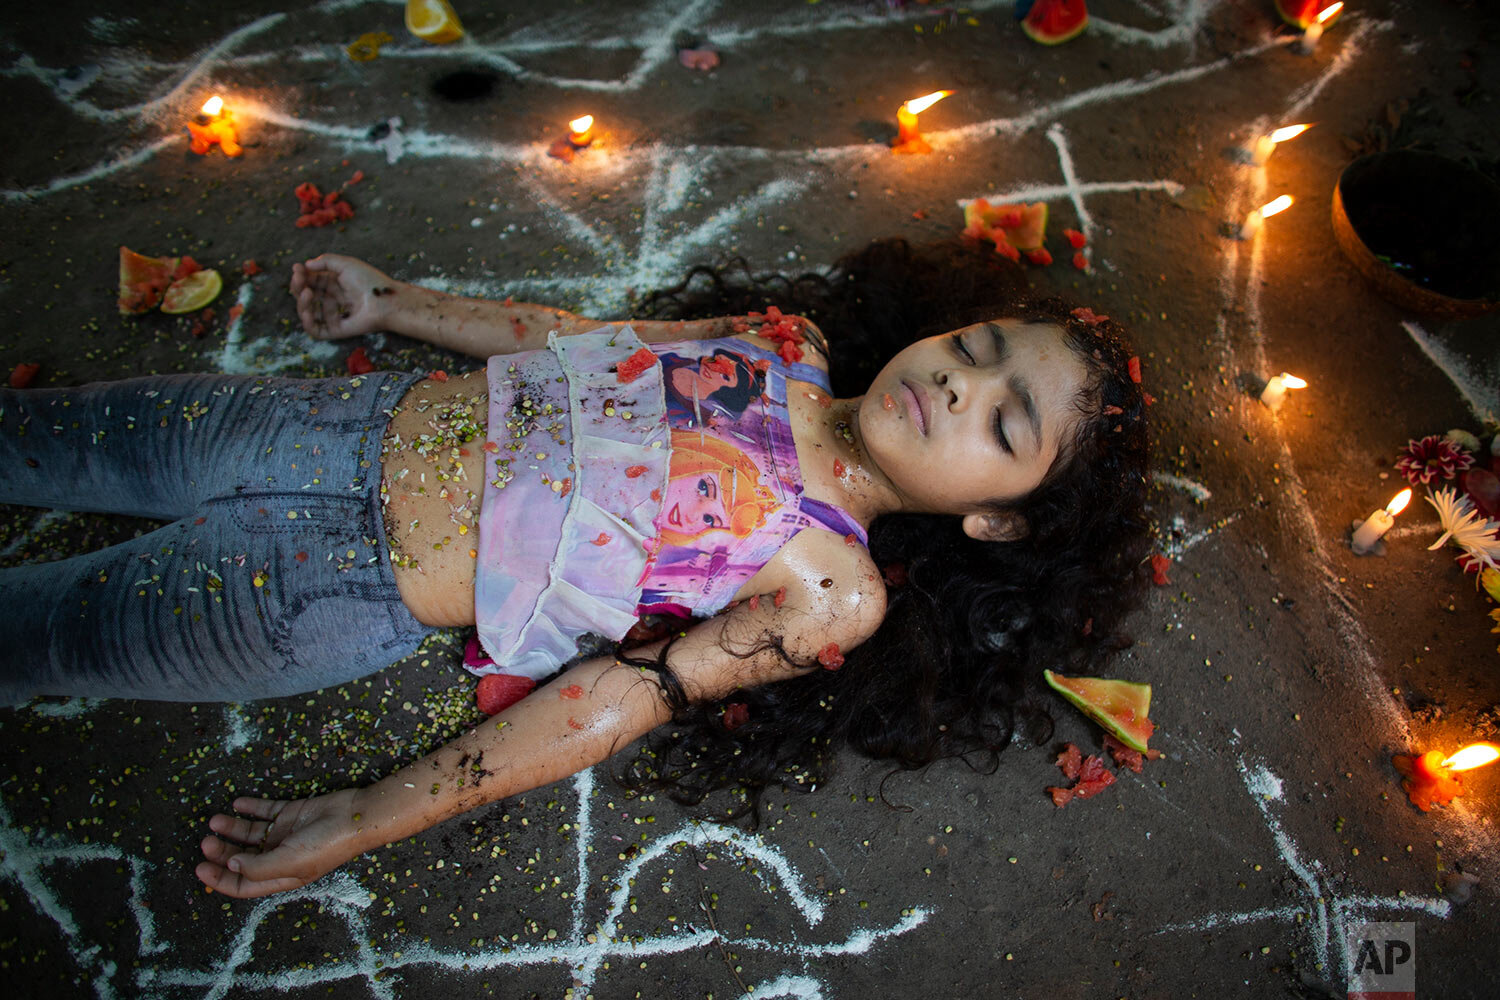 In this photo taken Oct. 13, 2019, girl lies surrounded by candles and designs of white powder during a ceremony on Sorte Mountain where followers of indigenous goddess Maria Lionza gather annually in Venezuela's Yaracuy state. (AP Photo/Ariana Cubillos)